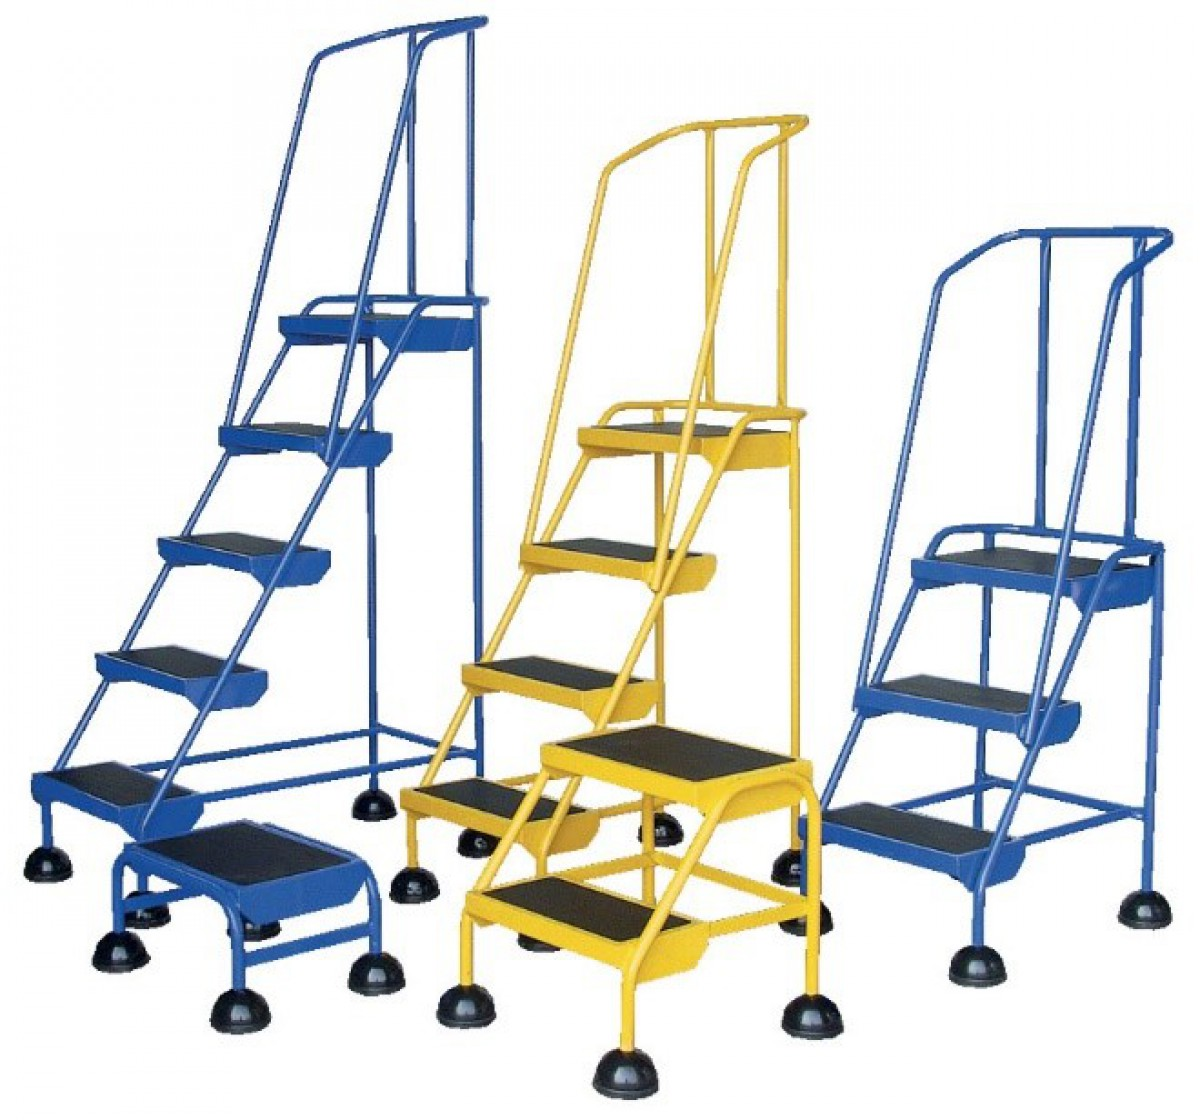 ... Portable Warehouse Stairs Many sizes and styles. Rolling Ladders Rolling Stairs Step Stools  sc 1 st  Humphries Casters & Rolling Ladders Rolling Stairways Step Stools islam-shia.org